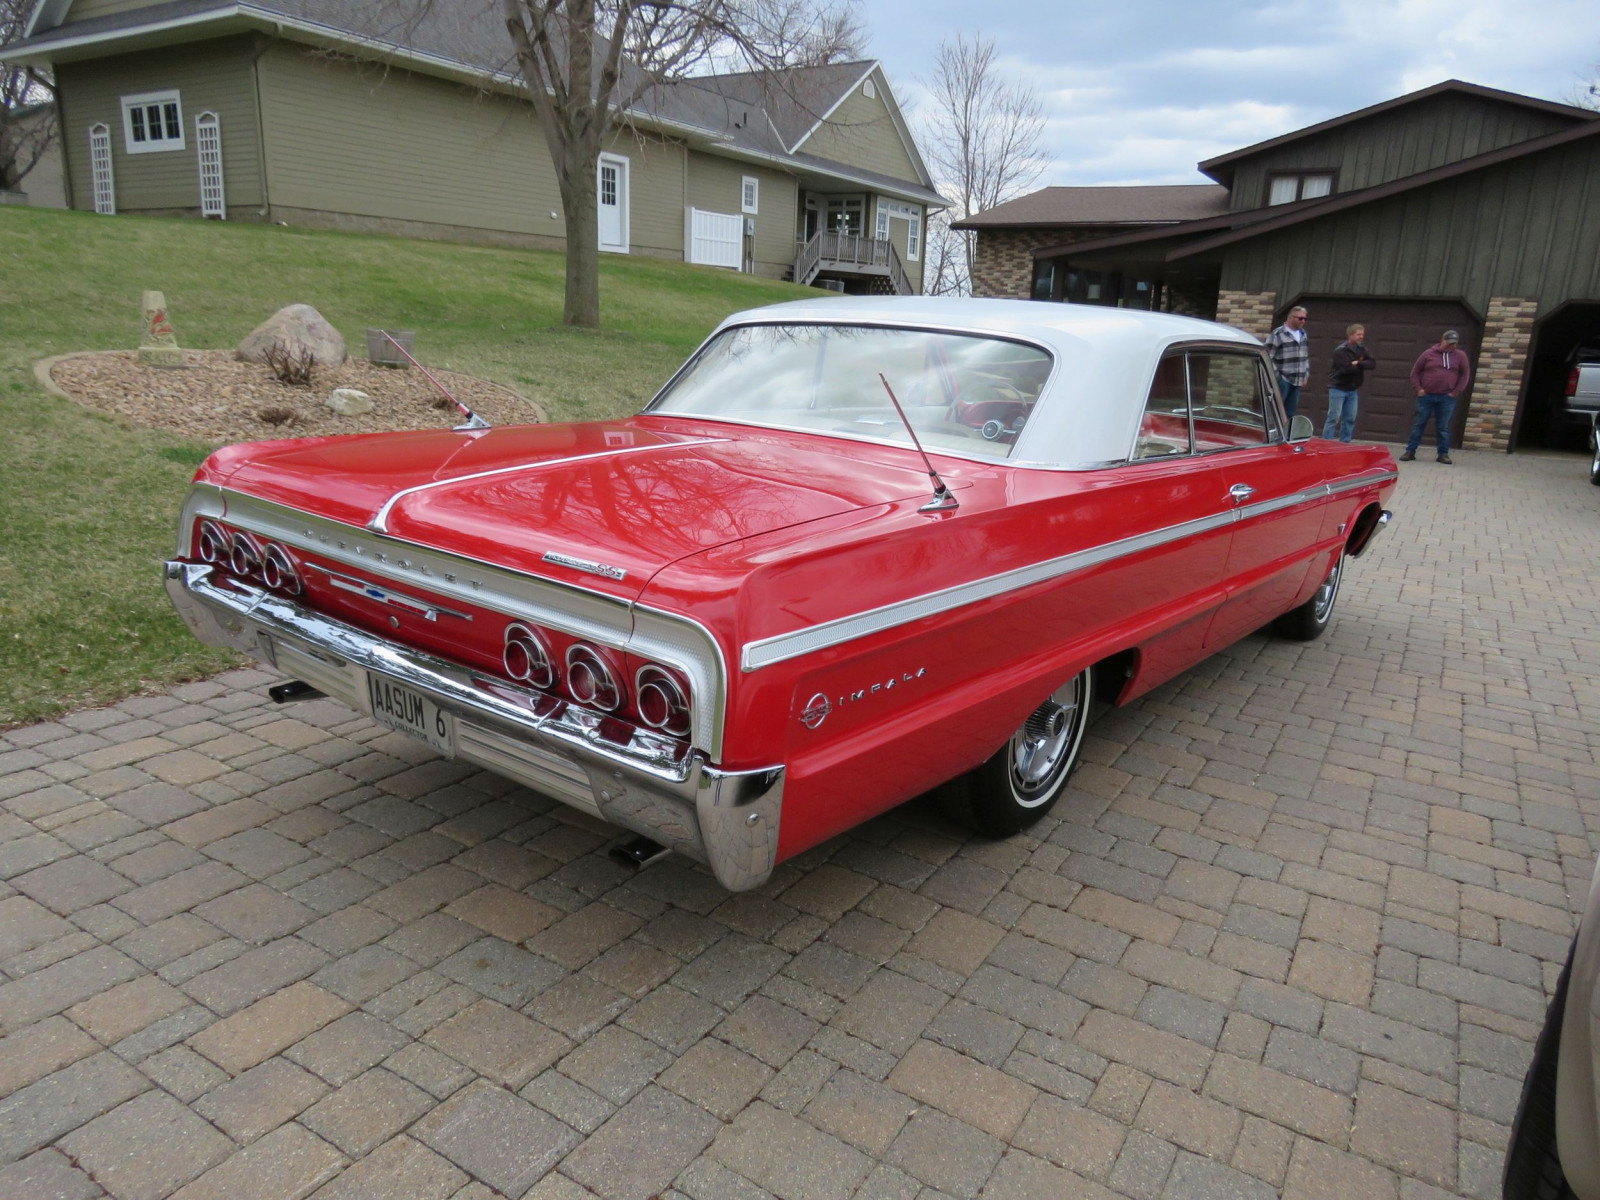 1964 Chevrolet Impala SS 2dr HT - Image 6